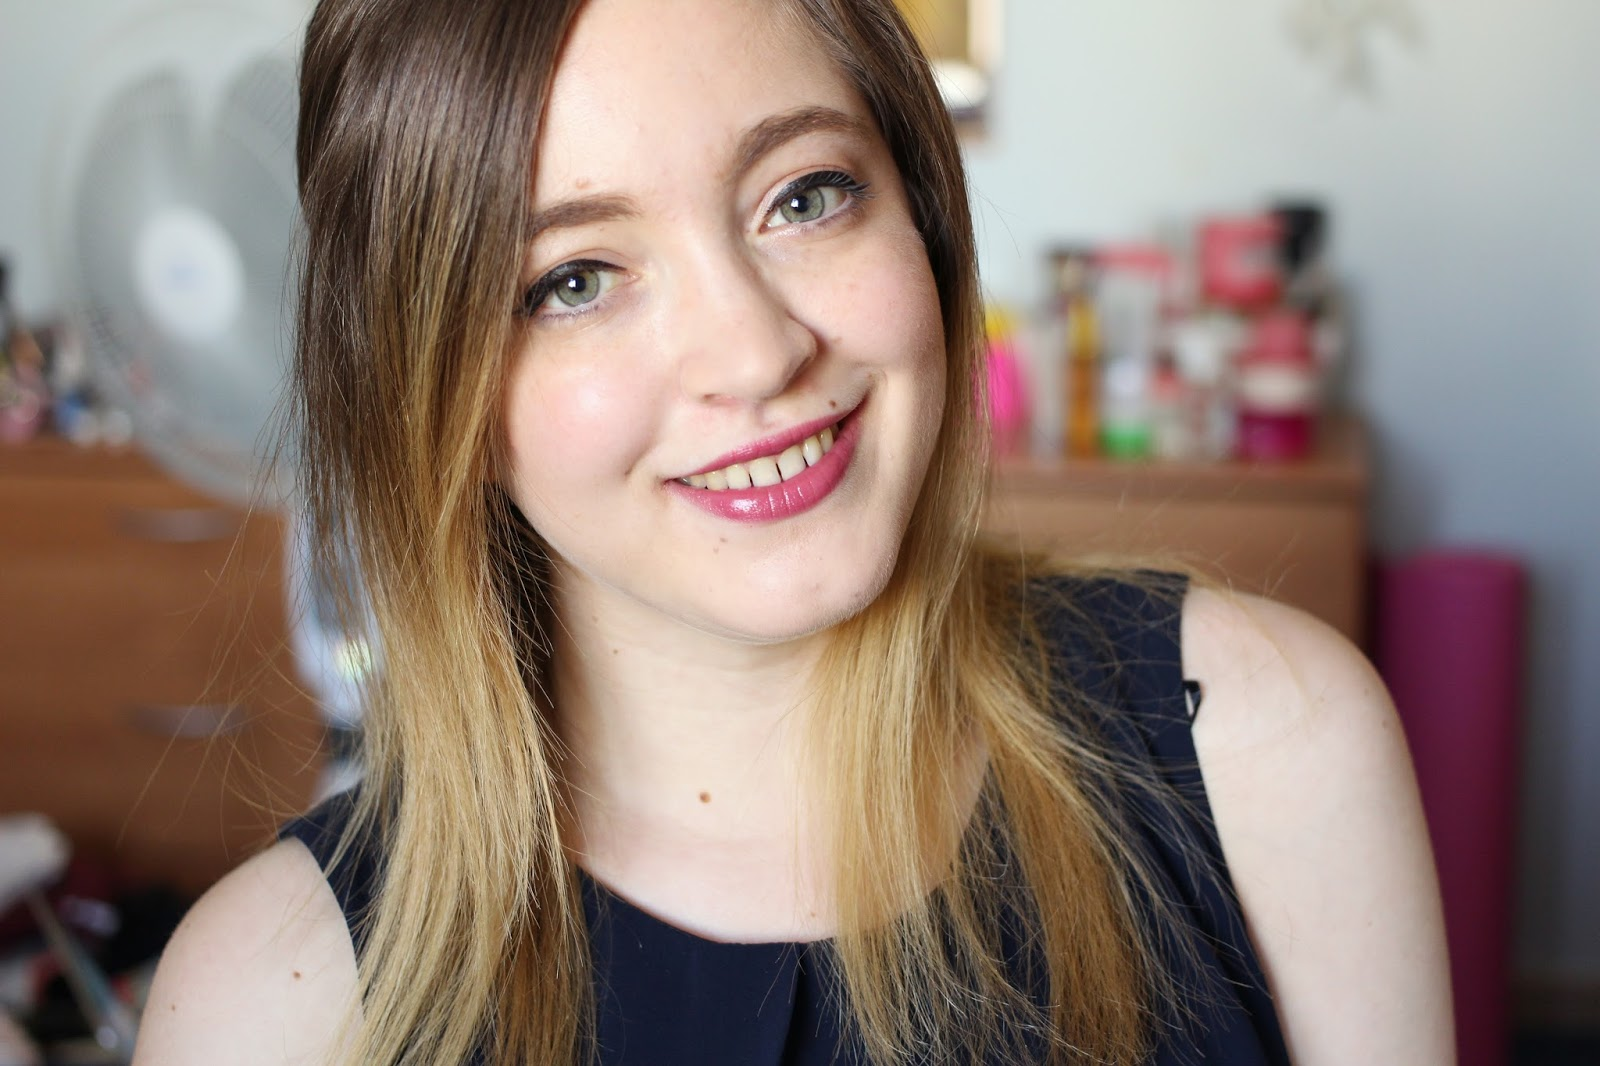 Ombre Hair Bleach London Diy Dip Dye Kit Review Beauty